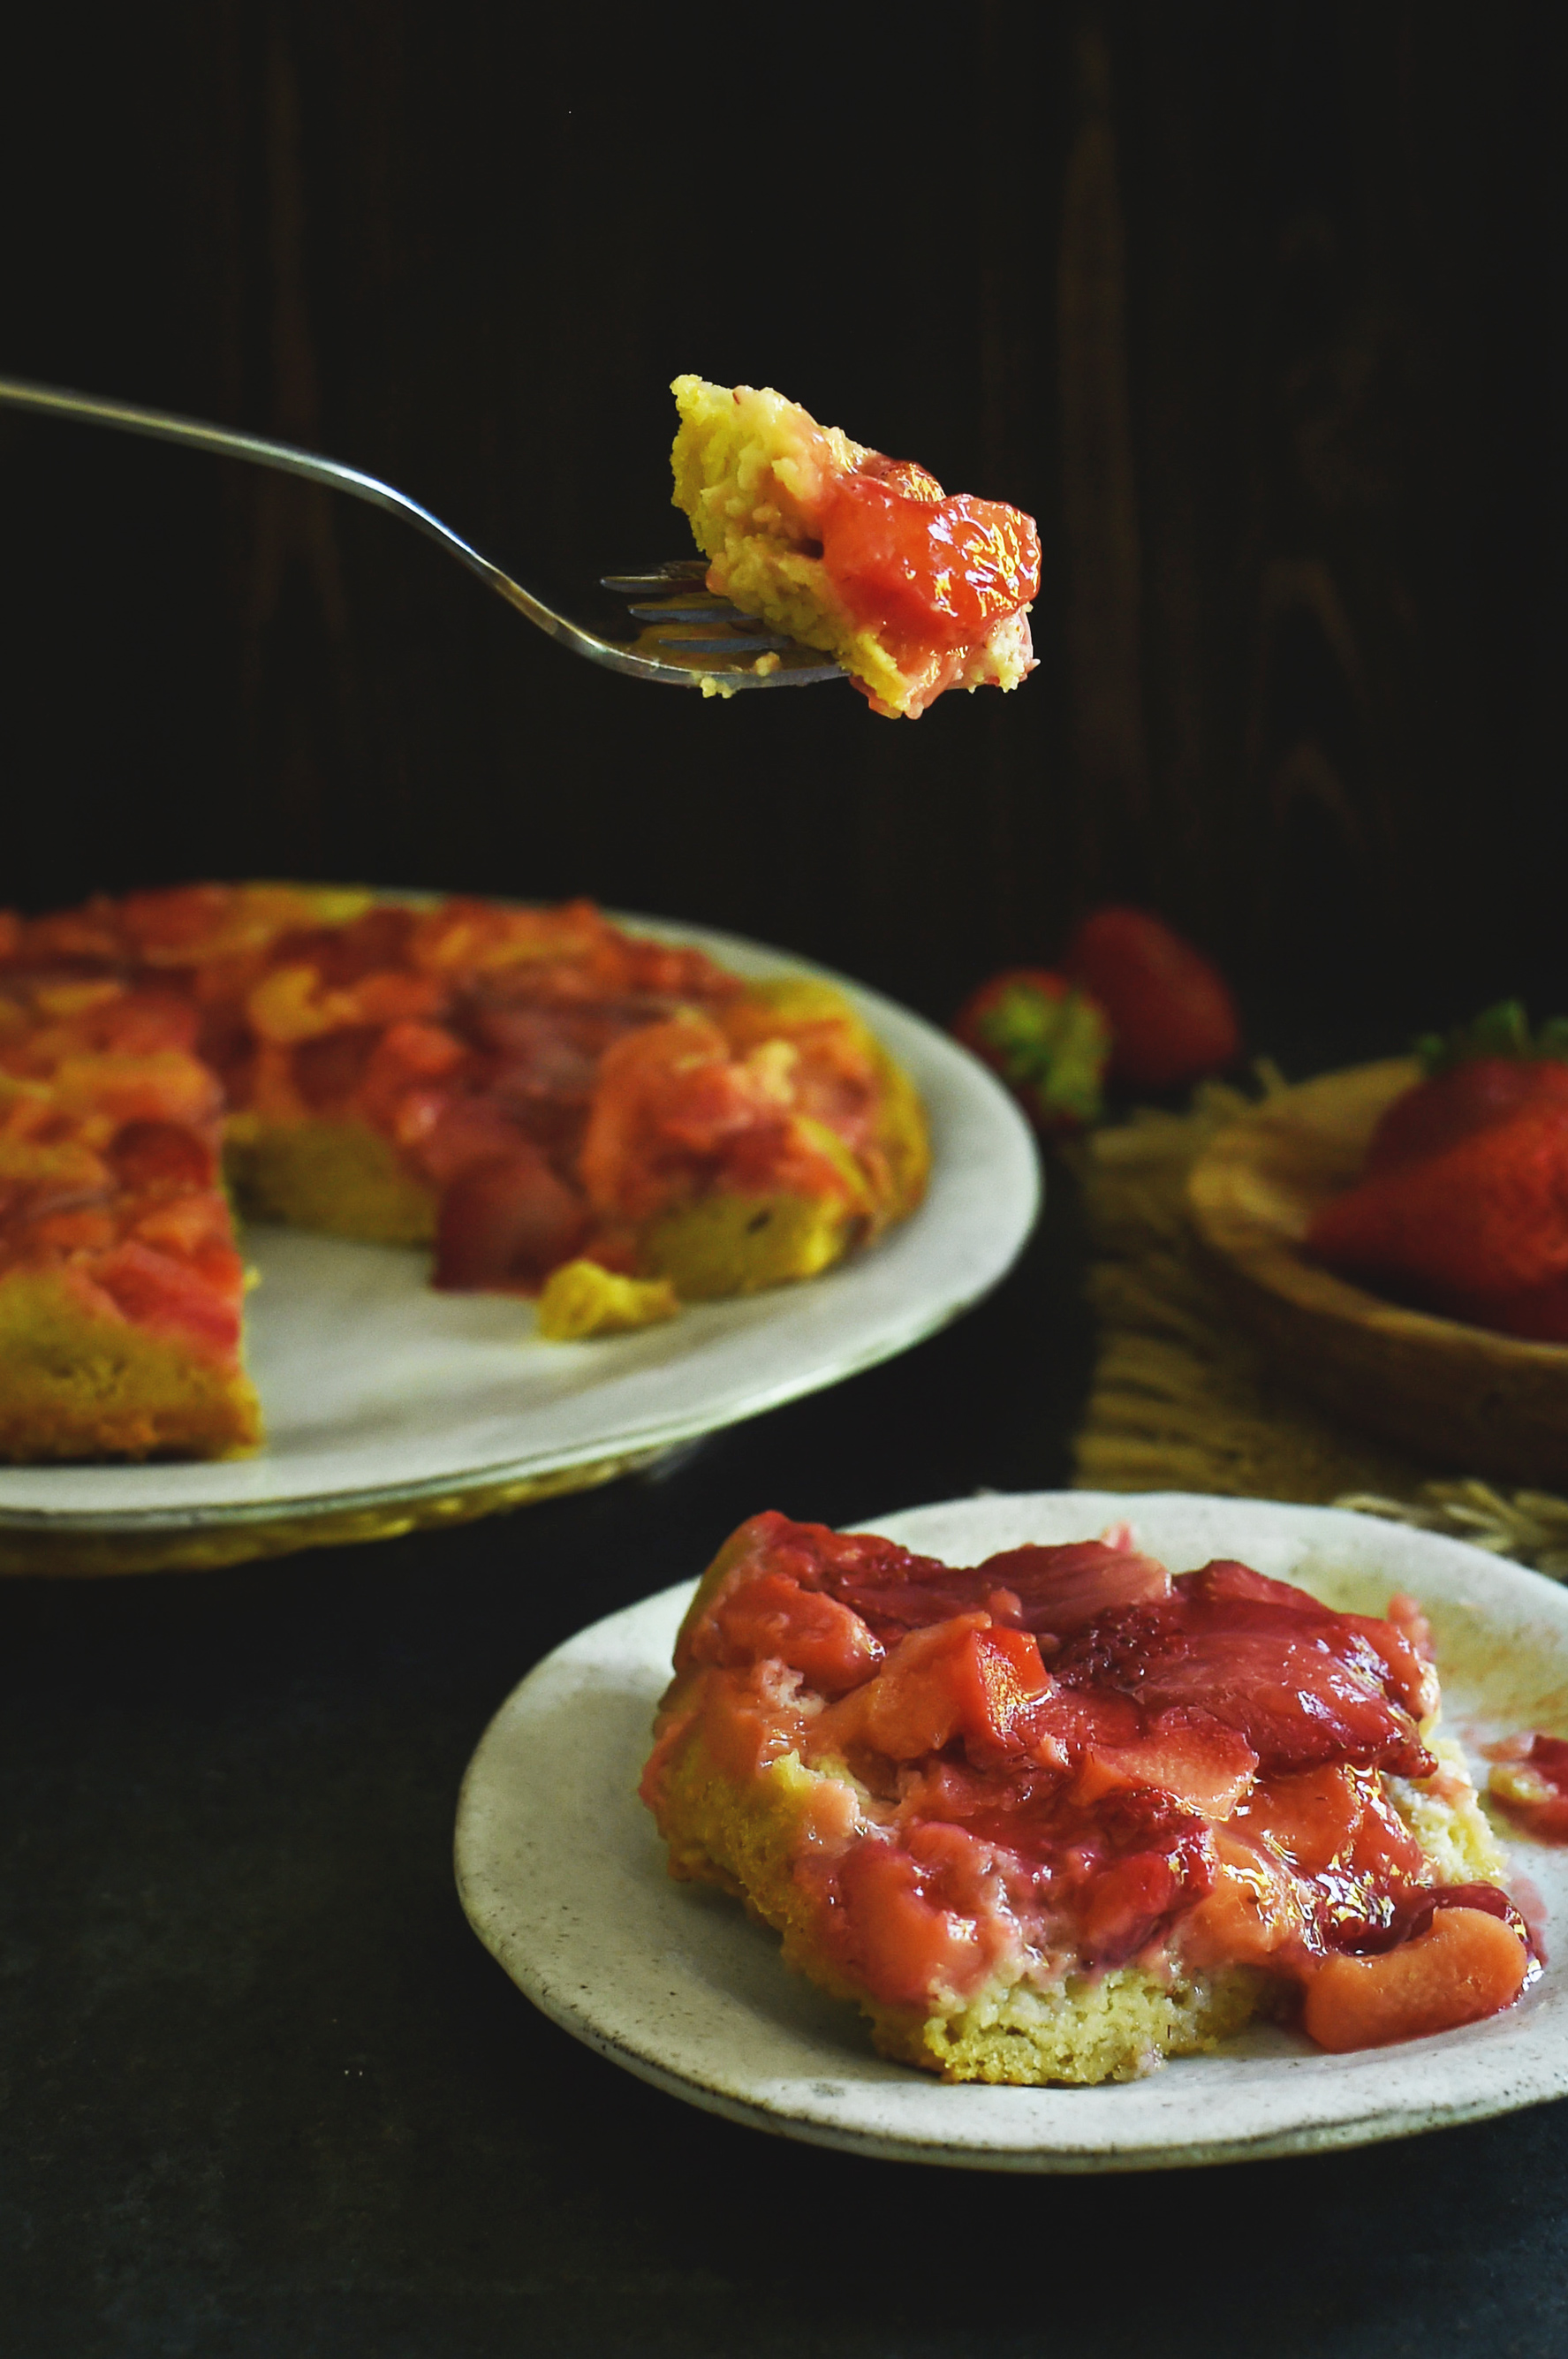 A bit of our Low-Carb Strawberry Rhubarb Upside-Down Cake